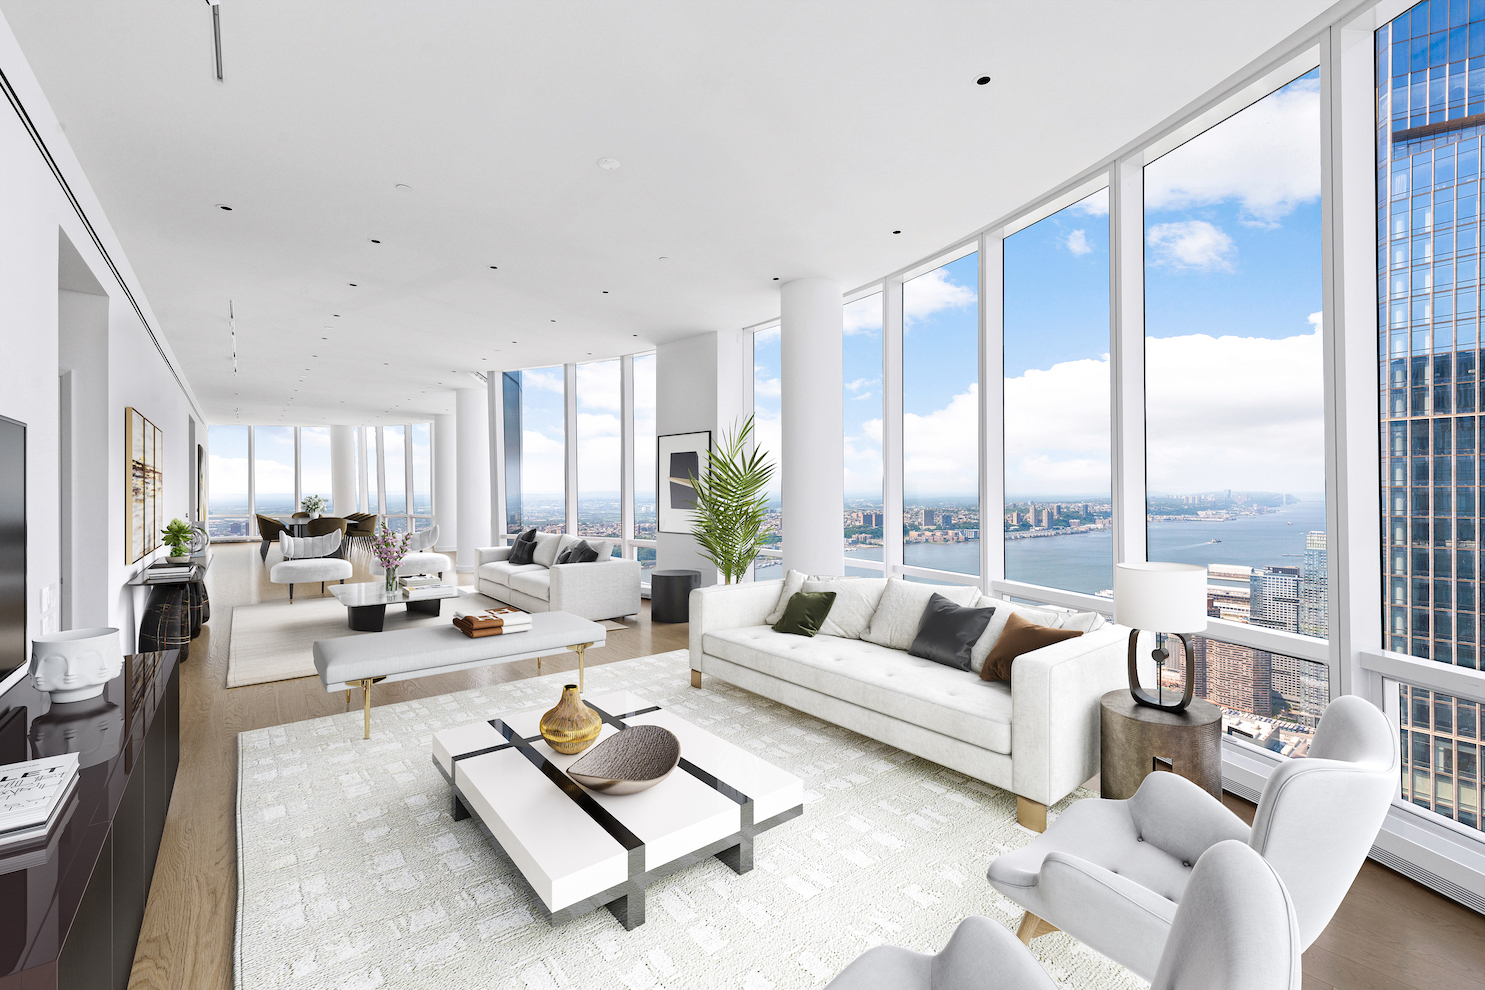 Introducing this never-before-lived-in sky mansion in the exclusive Hudson Yards neighborhood, a sublime 4-bedroom, 5-bathroom condo with a one-of-a-kind combination layout enveloped in shimmering floor-to-ceiling windows.  Additional features of the apartment include beautiful hardwood floors, triple exposure, a side-by-side washer/dryer, soaring ceilings over 10 ft. in height, and expansive views of the Hudson River, the Empire State Building, and the Manhattan skyline.  The home begins with a grand foyer, where residents will enjoy a pair of walk-in storage closets and easy access to a pair of pristine powder rooms. The foyer leads into a massive great room that spans the width of the building and overlooks the Hudson River. Just off the great room is a windowed eat-in kitchen adorned with a huge peninsula, a spacious breakfast nook, sleek marble countertops and backsplashes, custom cabinets, and a suite of fully-integrated appliances from Miele.  The bedrooms are split between two private wings for maximum comfort and privacy. The expansive primary bedroom has couples' walk-in closets, a trio of supplementary reach-in closets, and a windowed en-suite bathroom with double sinks, a walk-in rain shower, an enclosed toilet, and a deep soaking tub. The second bedroom has dual walk-in closets and a full en-suite with double sinks, a walk-in shower, and a separate tub, while the third and fourth bedrooms each ample closet space and full en-suite bathrooms with chic tiles and custom vanities.  Fifteen Hudson Yards is a brand new residential building located in Hudson Yards. Residents have access to more than 40,000 sq. ft. of amenities that include a 75-ft long swimming pool, a state-of-the-art fitness center by The Wright Fit, a private yoga studio, spa suites, a beauty bar, private dining suites, a lounge, a screening room, a business center, a golf club, and an atelier. There is a 24-hour attended lobby and concierge service. The building has easy access to The High 